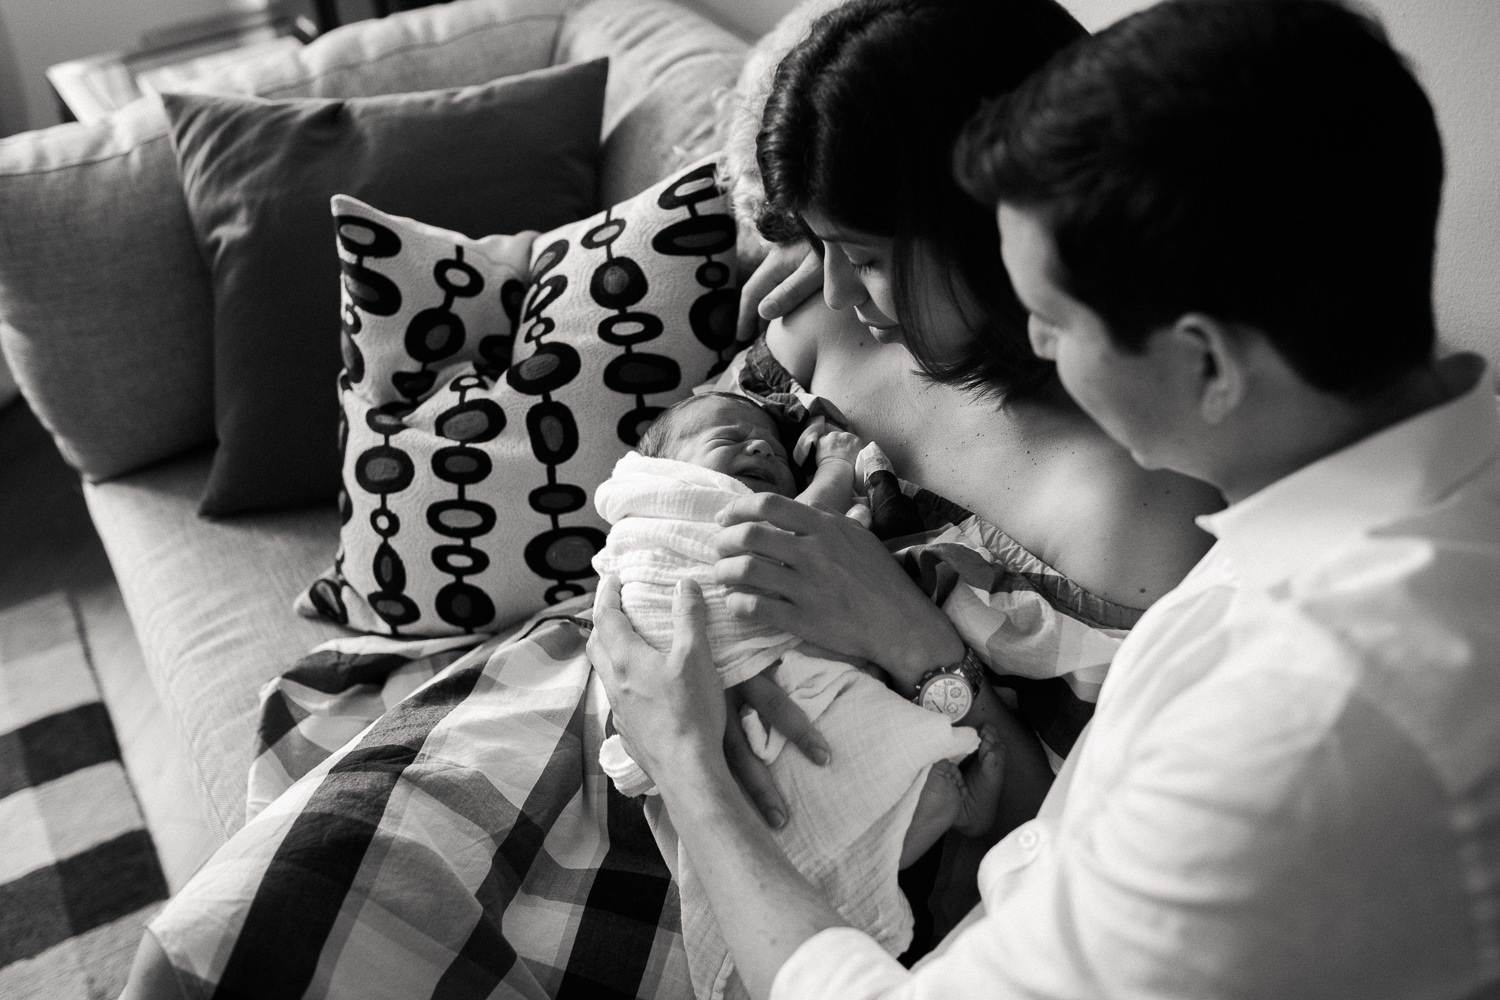 new parents sitting on couch in living room snuggling 2 week old baby boy in white swaddle, mom holding son, dad with arm around her - Newmarket In-Home Photos